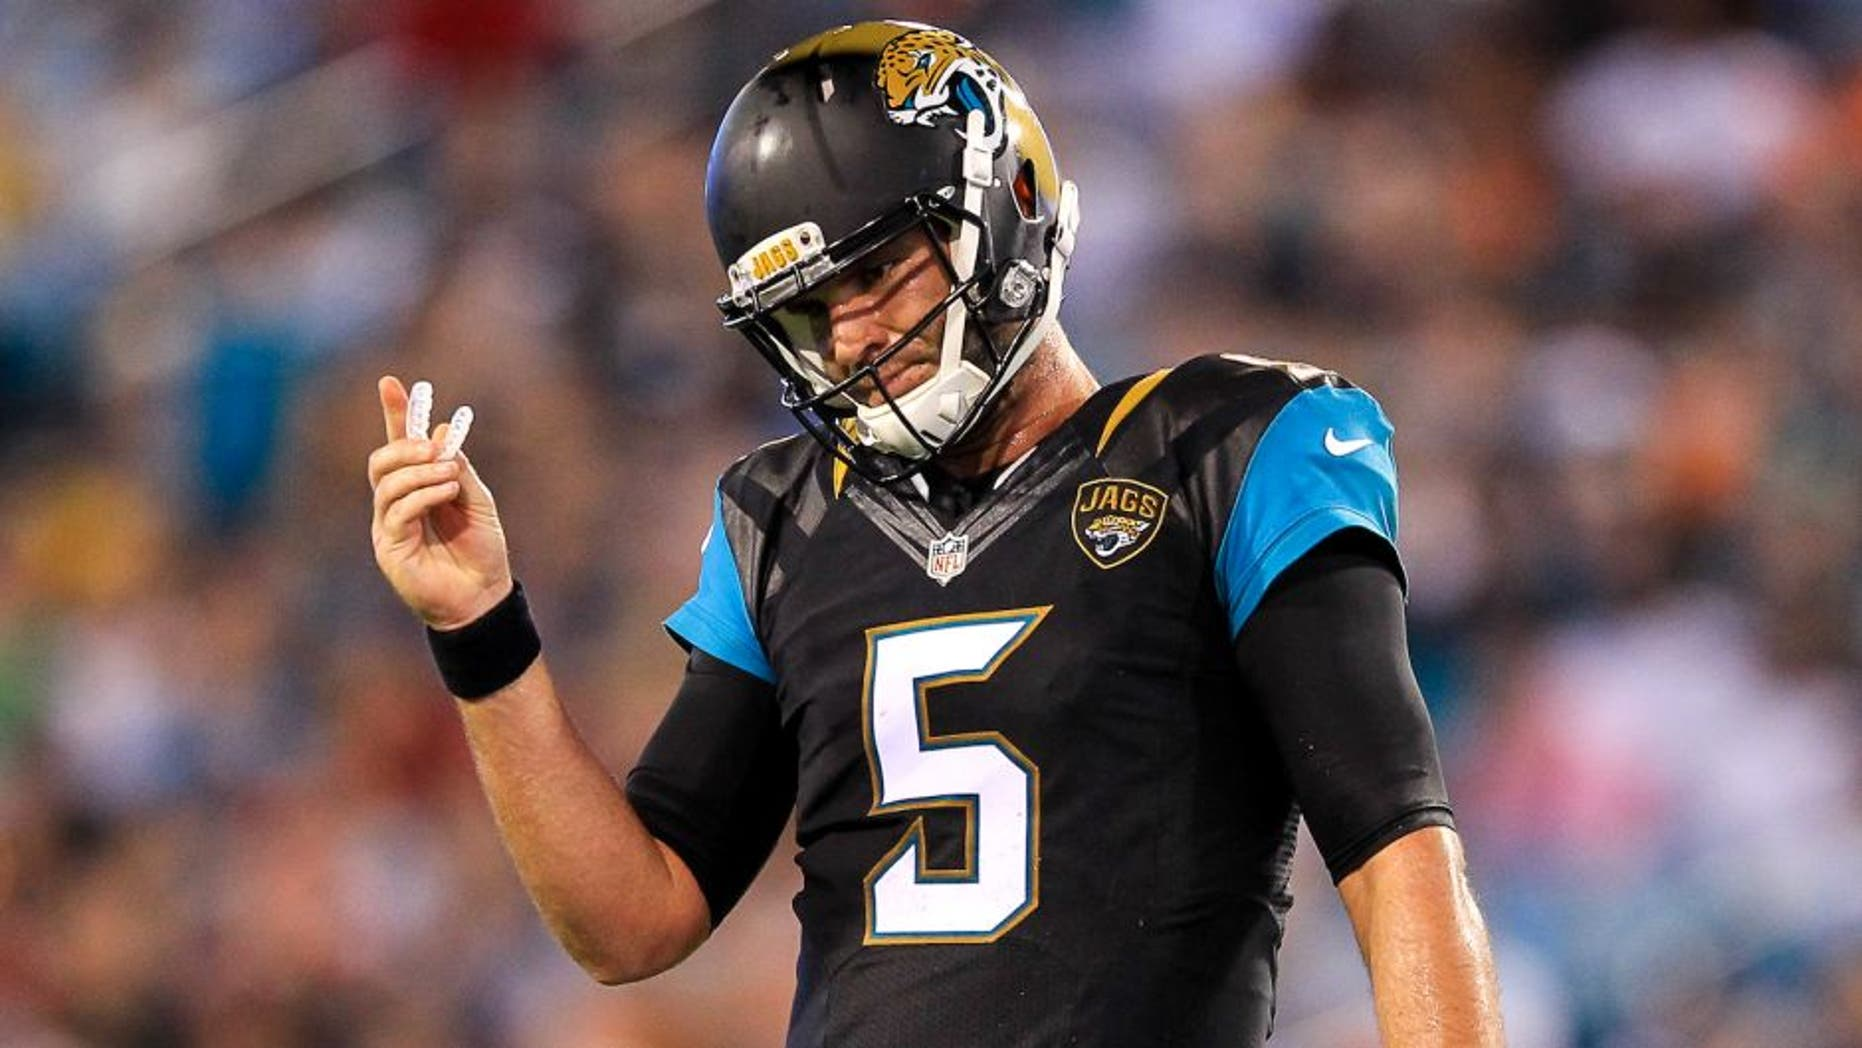 JACKSONVILLE, FL - AUGUST 28: Blake Bortles #5 of the Jacksonville Jaguars reacts during the preseason game against the Cincinnati Bengals at EverBank Field on August 28, 2016 in Jacksonville, Florida. (Photo by Rob Foldy/Getty Images)